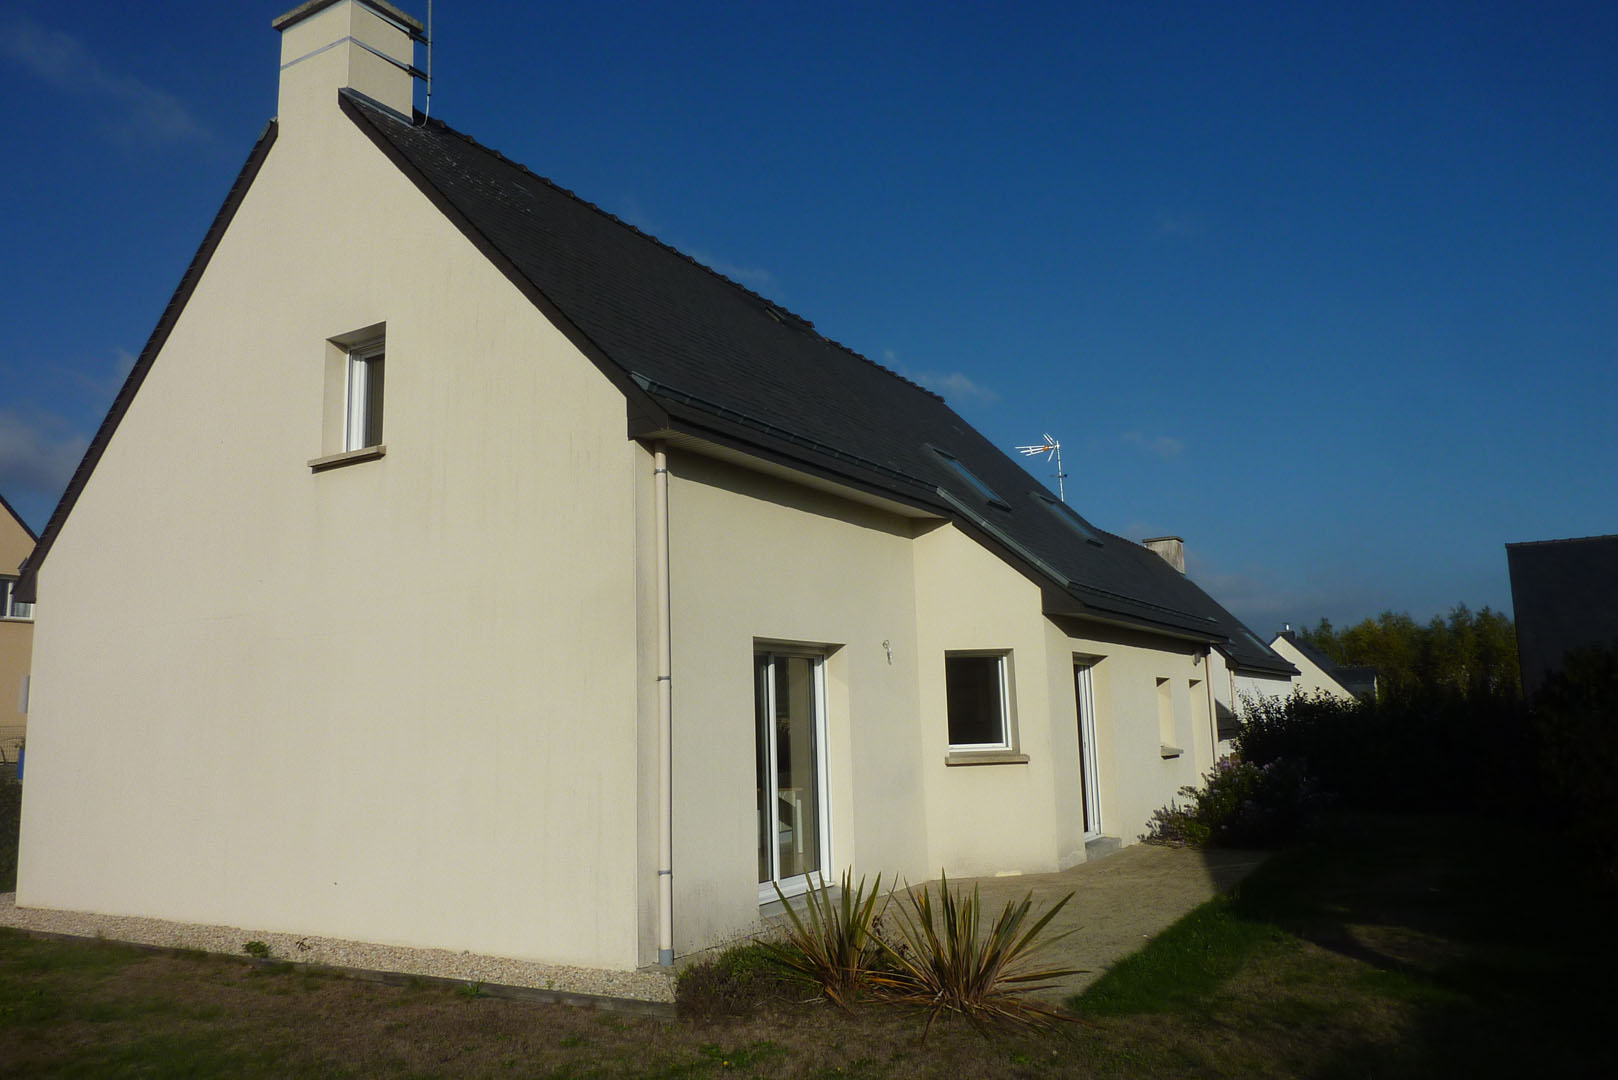 Agence immobili re janze arnocoster immobilier agence for Location maison chartres de bretagne